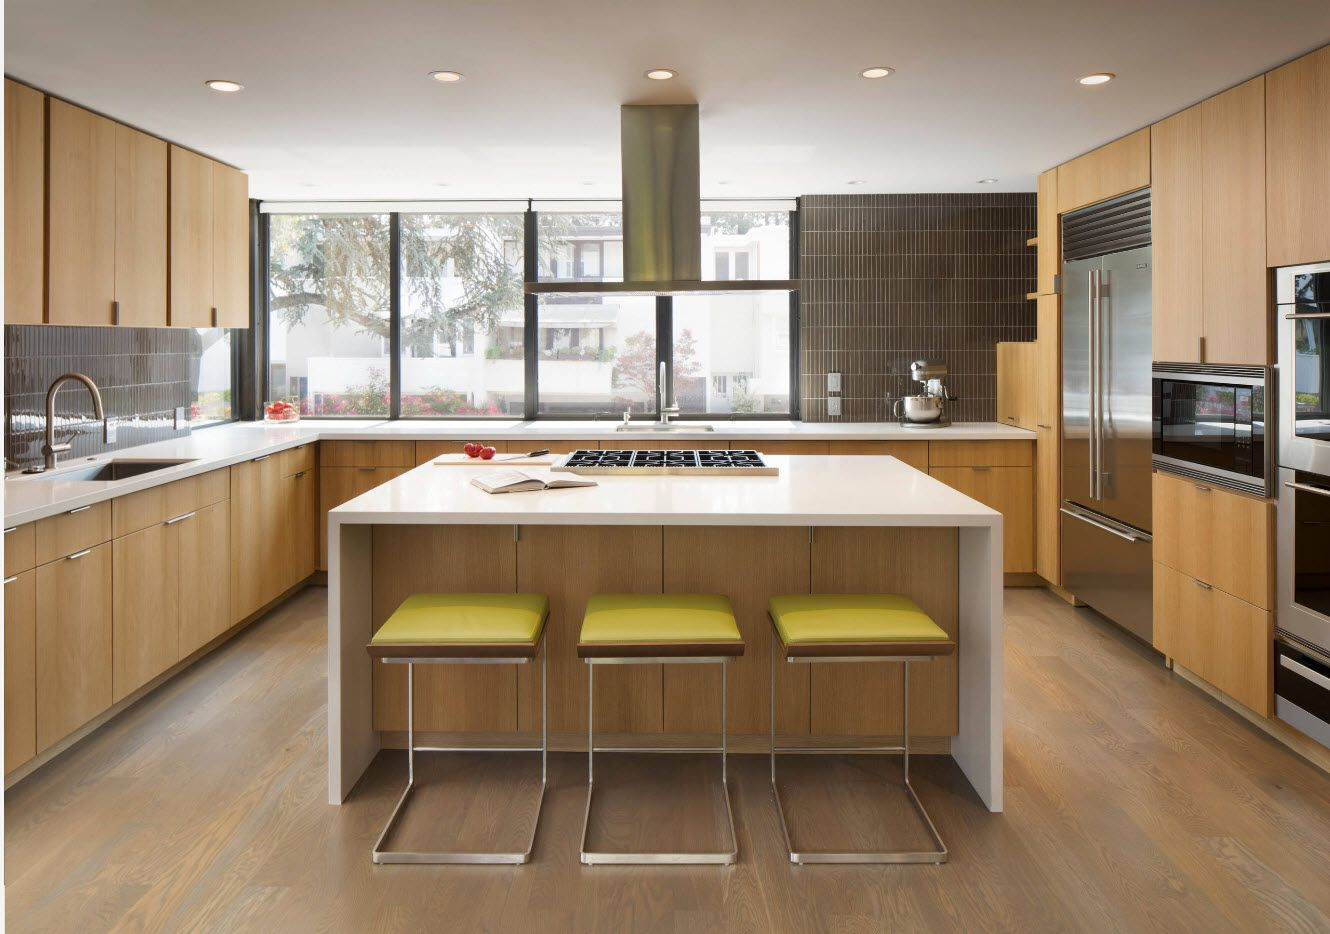 Yellow stools at the plastic trimmed kitchen island